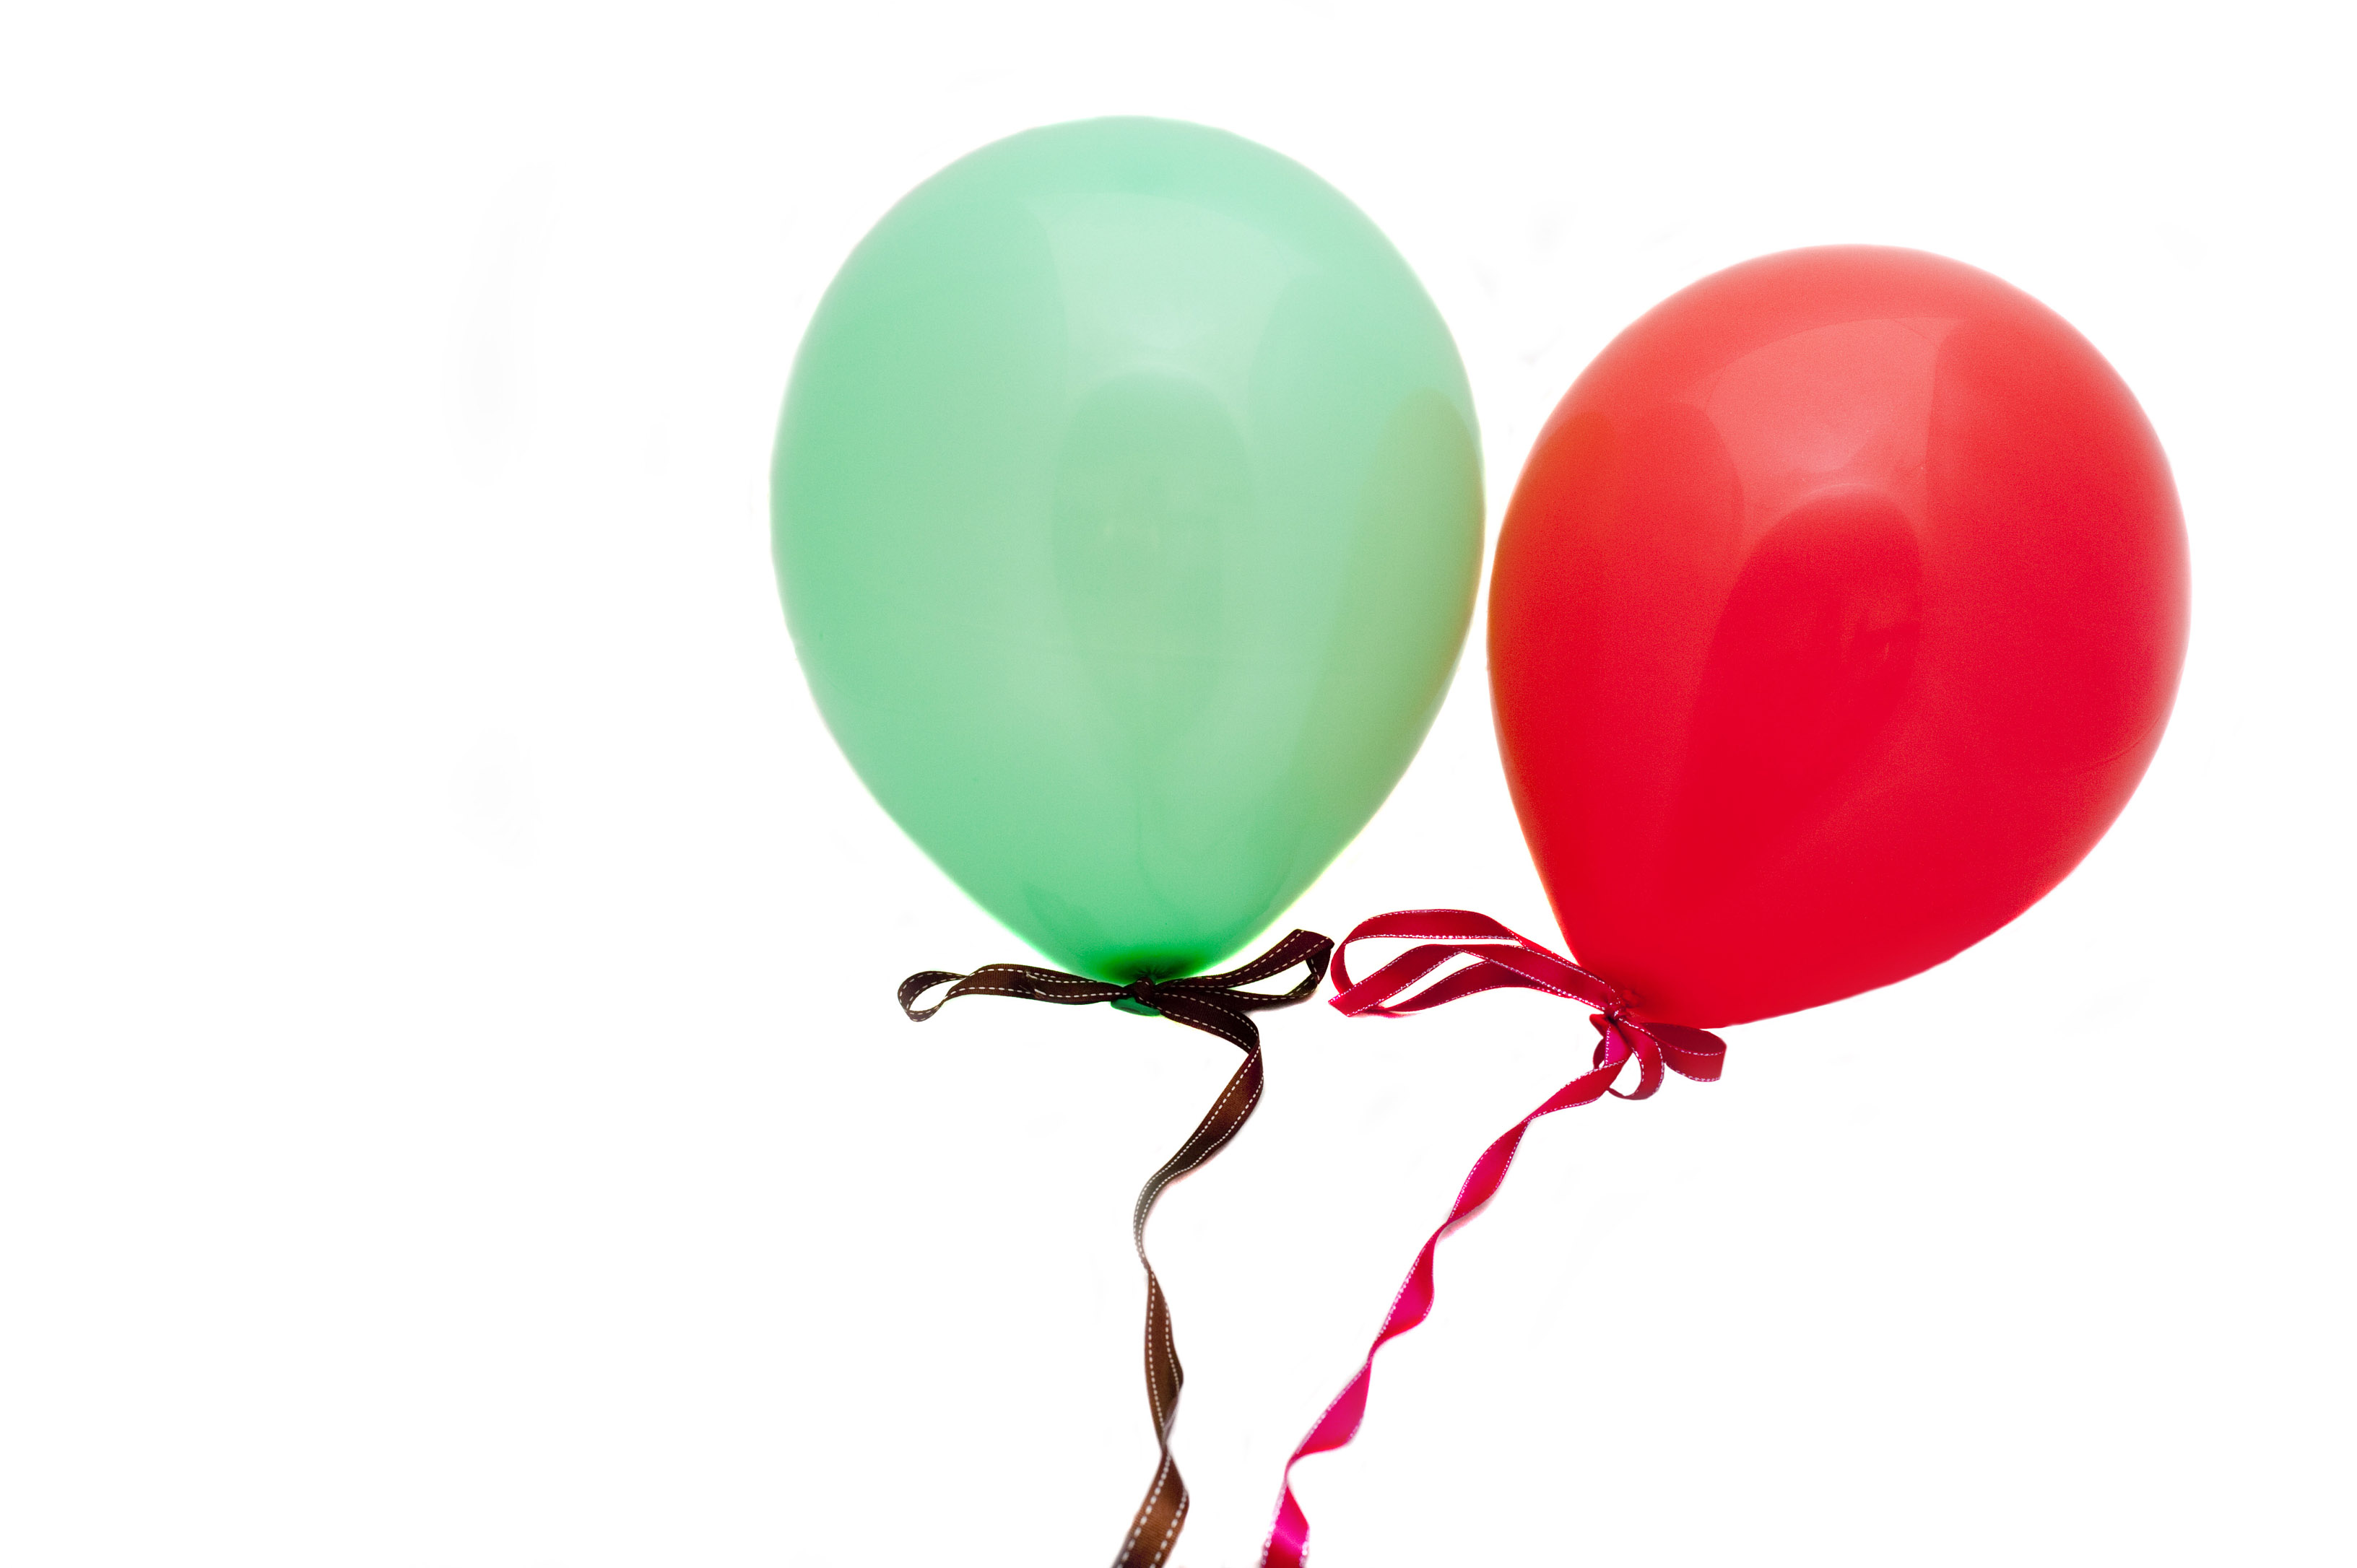 red and green party baloons on white background